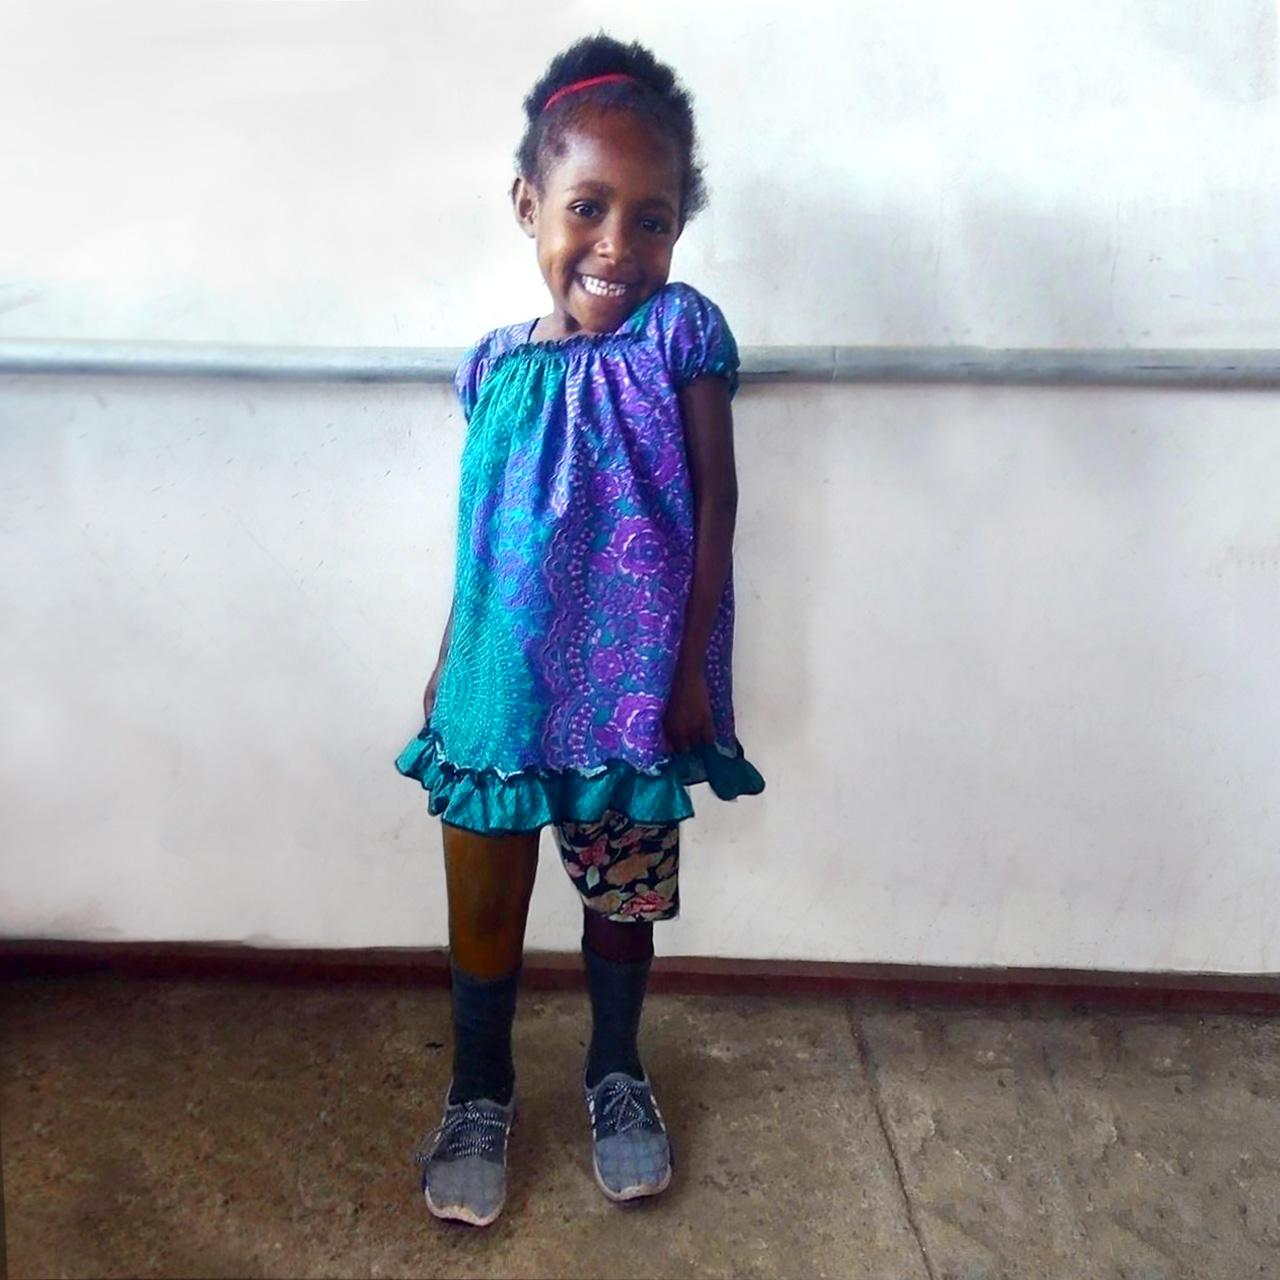 Violet stands on her new prosthesis without any extra support, she is wearing a colourful shirt and shorts and smiles brightly at the camera.